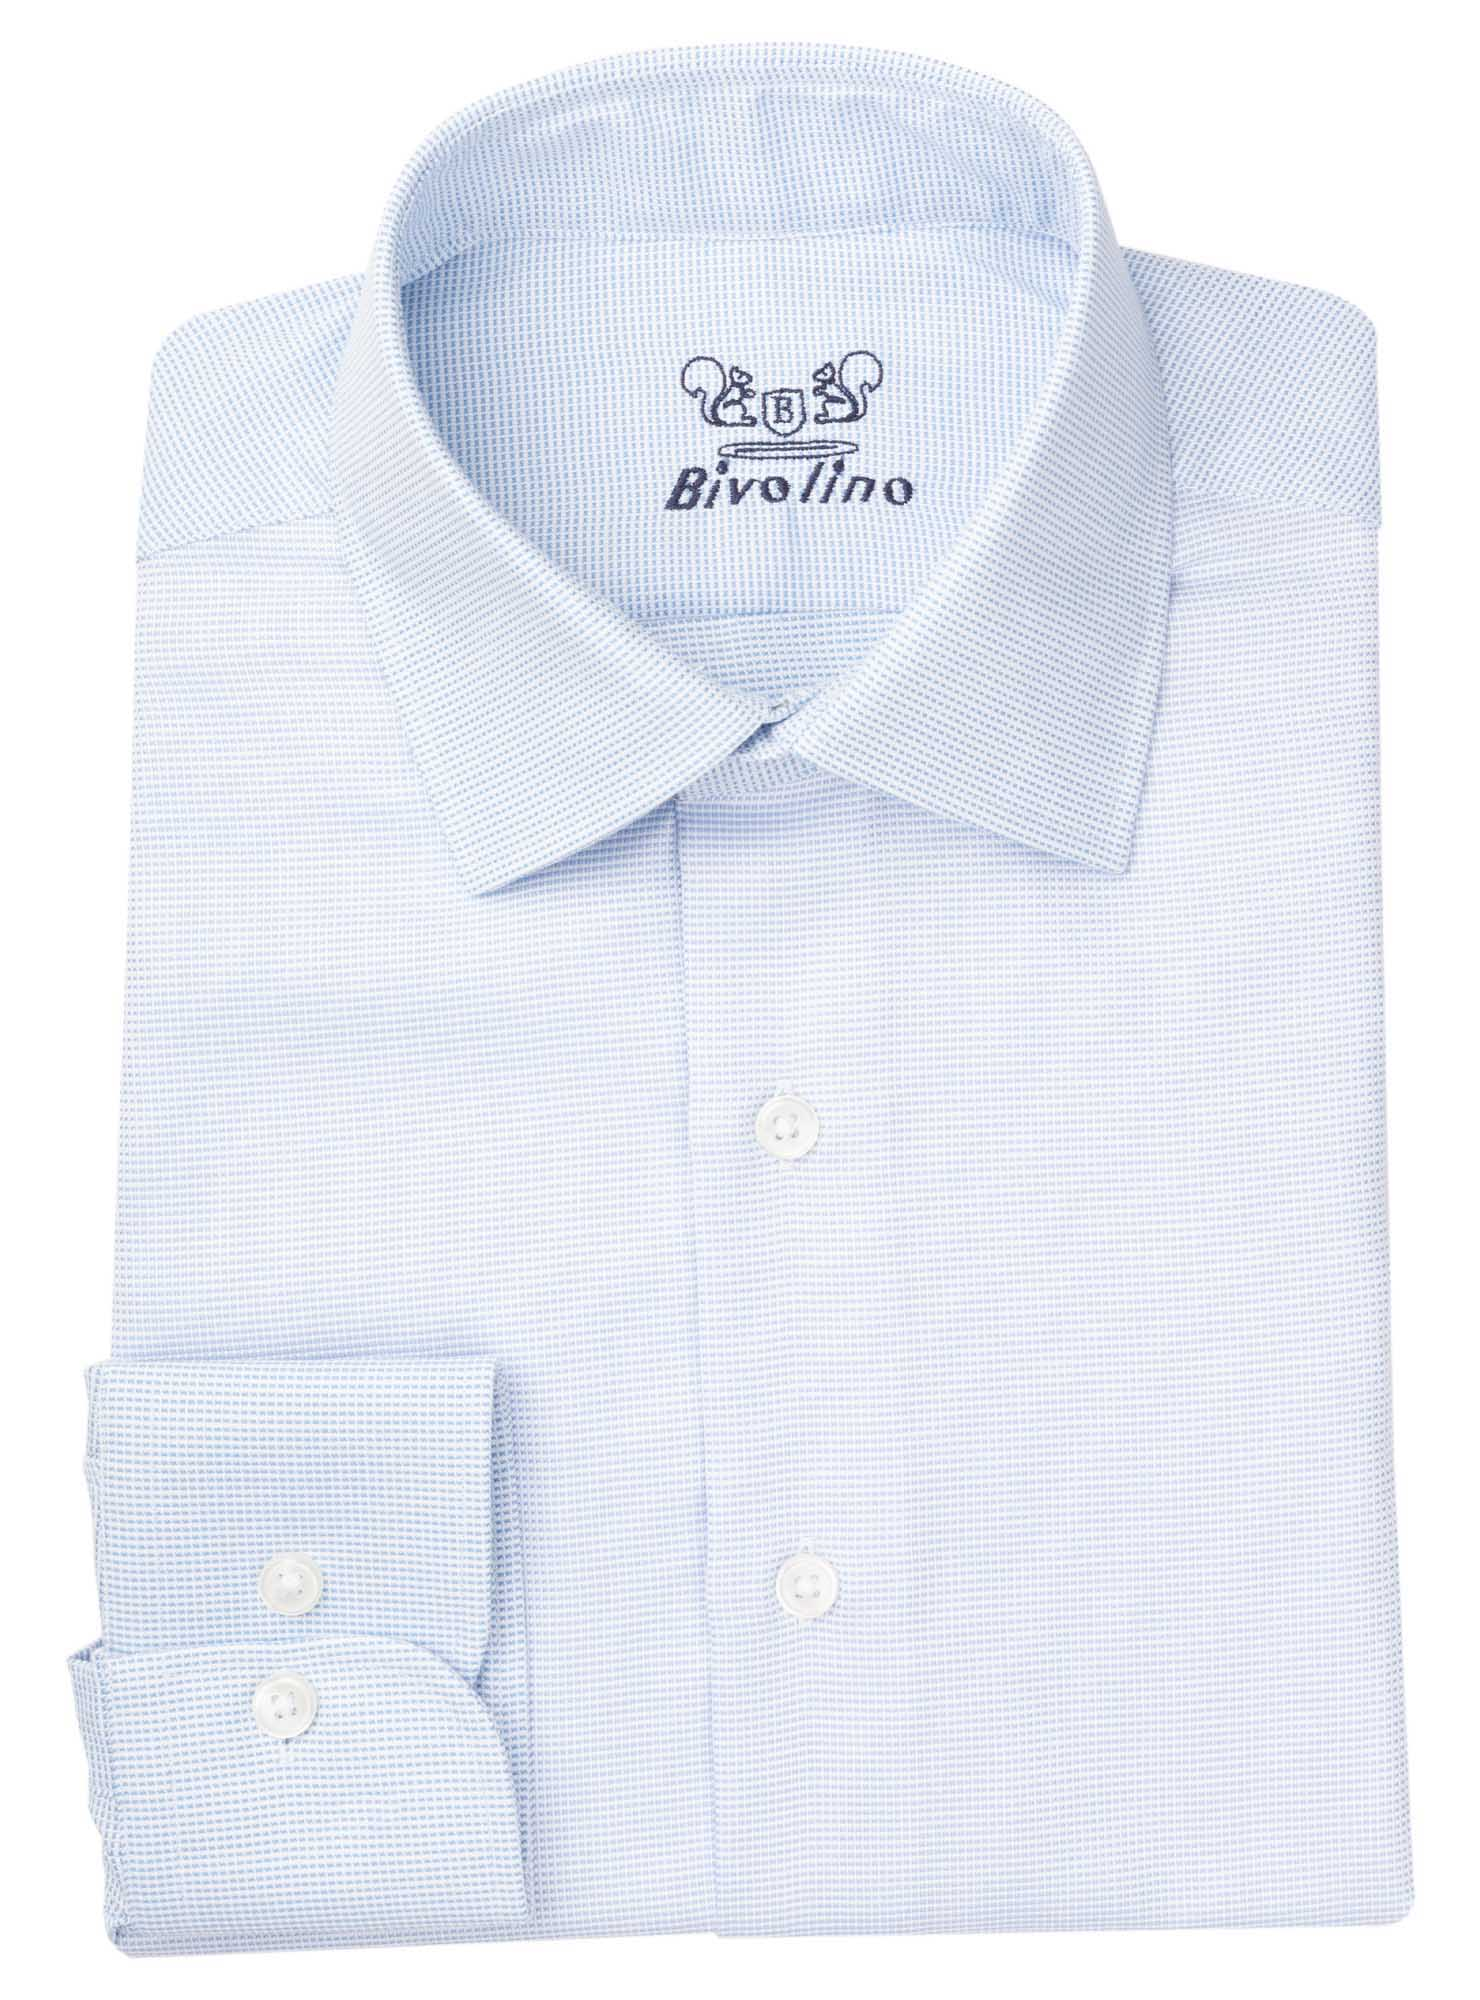 MESSINA - Men's shrt cotton oxford - ROYAL PANAMA 1